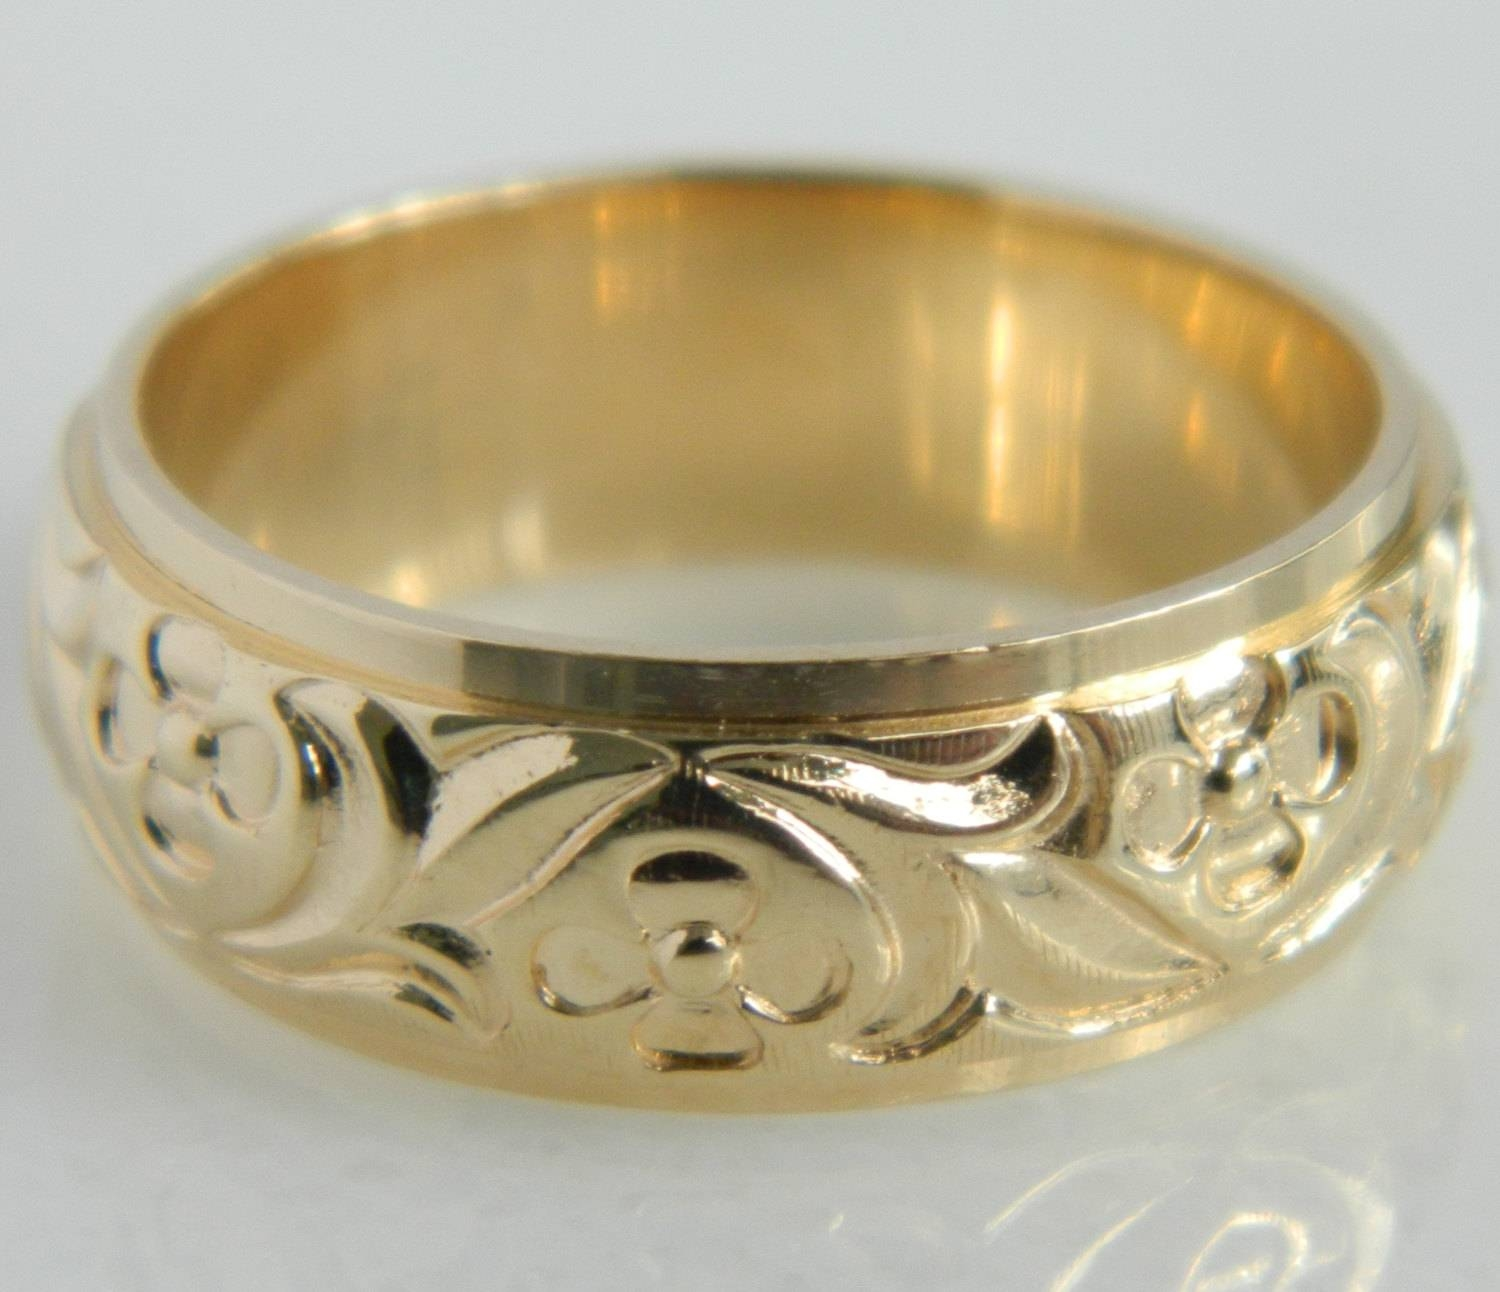 Vintage 14K Gold Floral Art Carved Wedding Band Regarding Carved Wedding Bands (View 13 of 15)